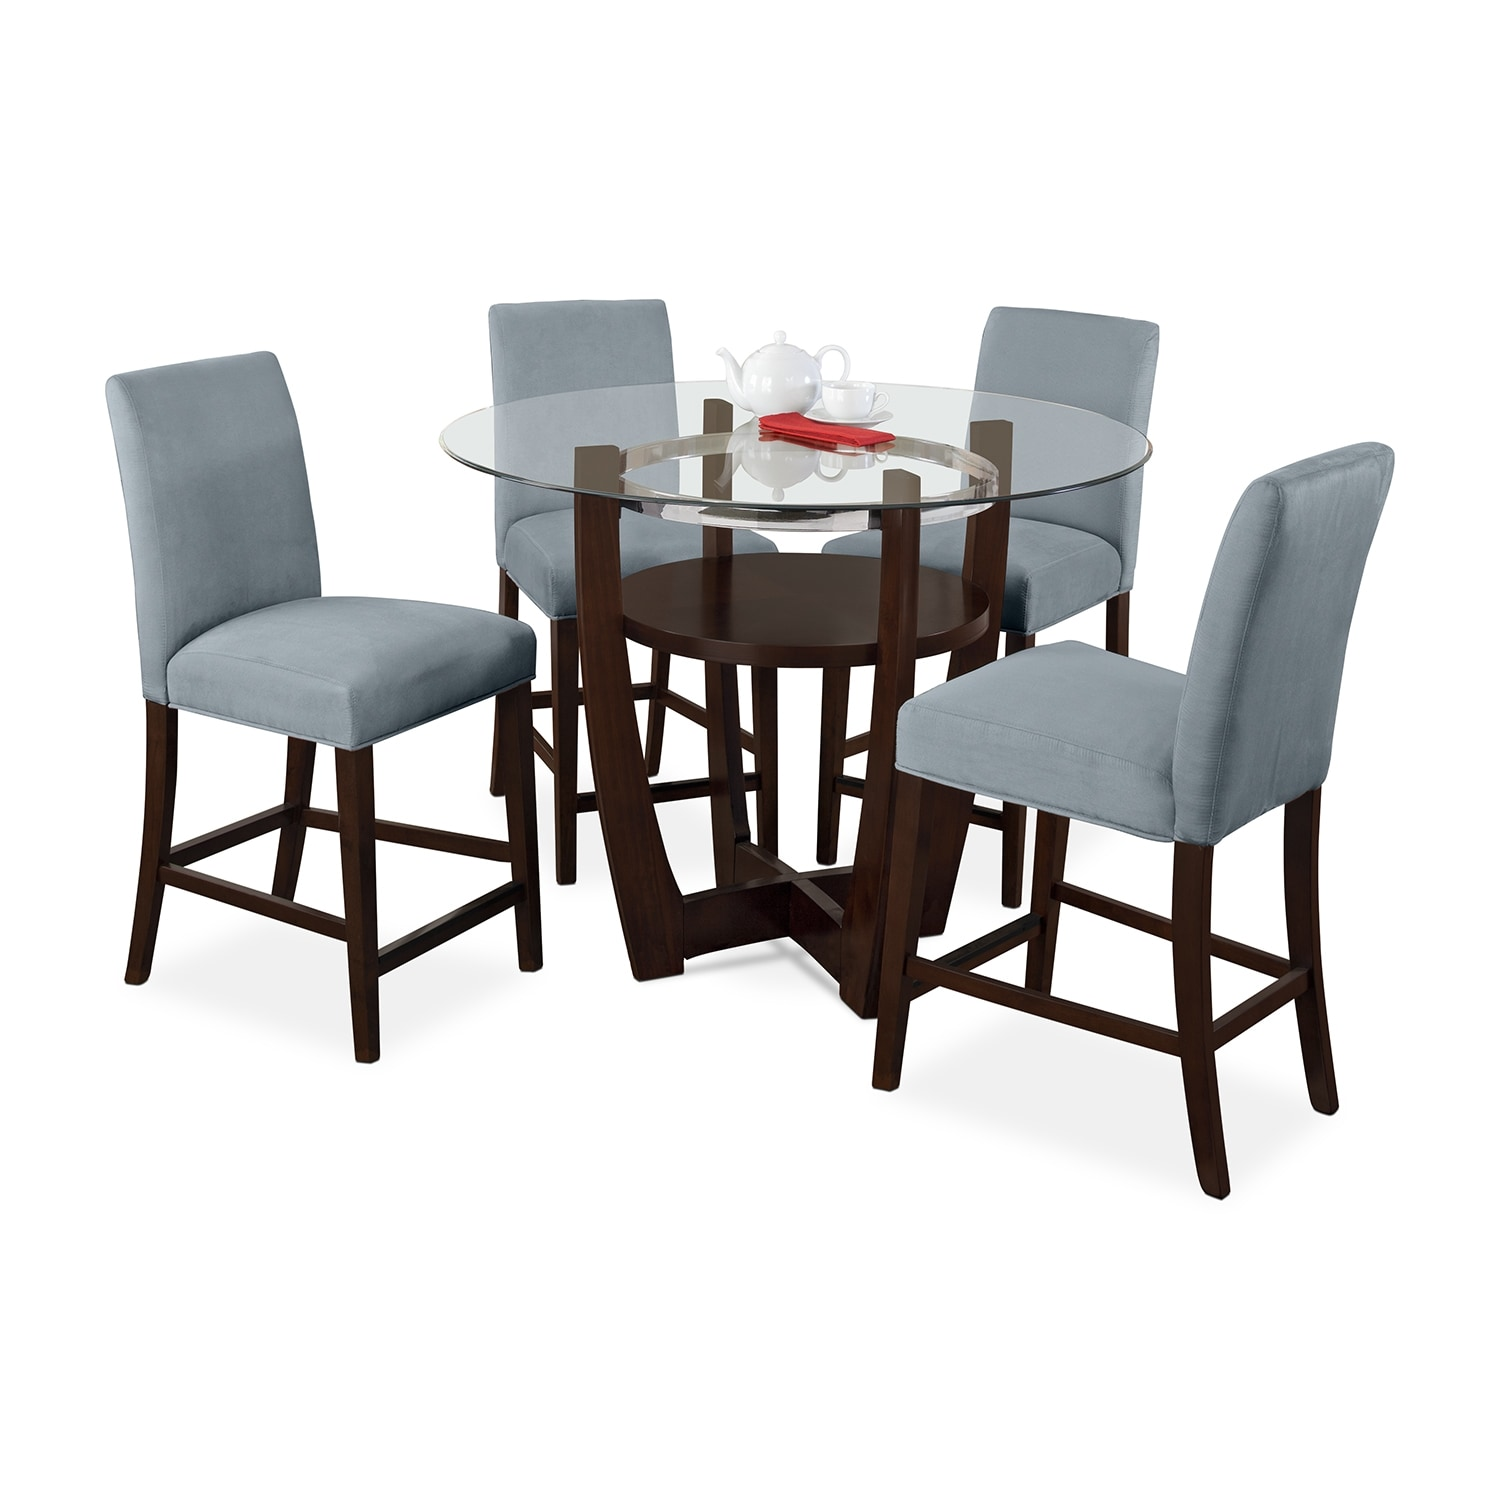 Good Alcove Counter Height Dinette With 4 Side Chairs   Aqua By Factory Outlet